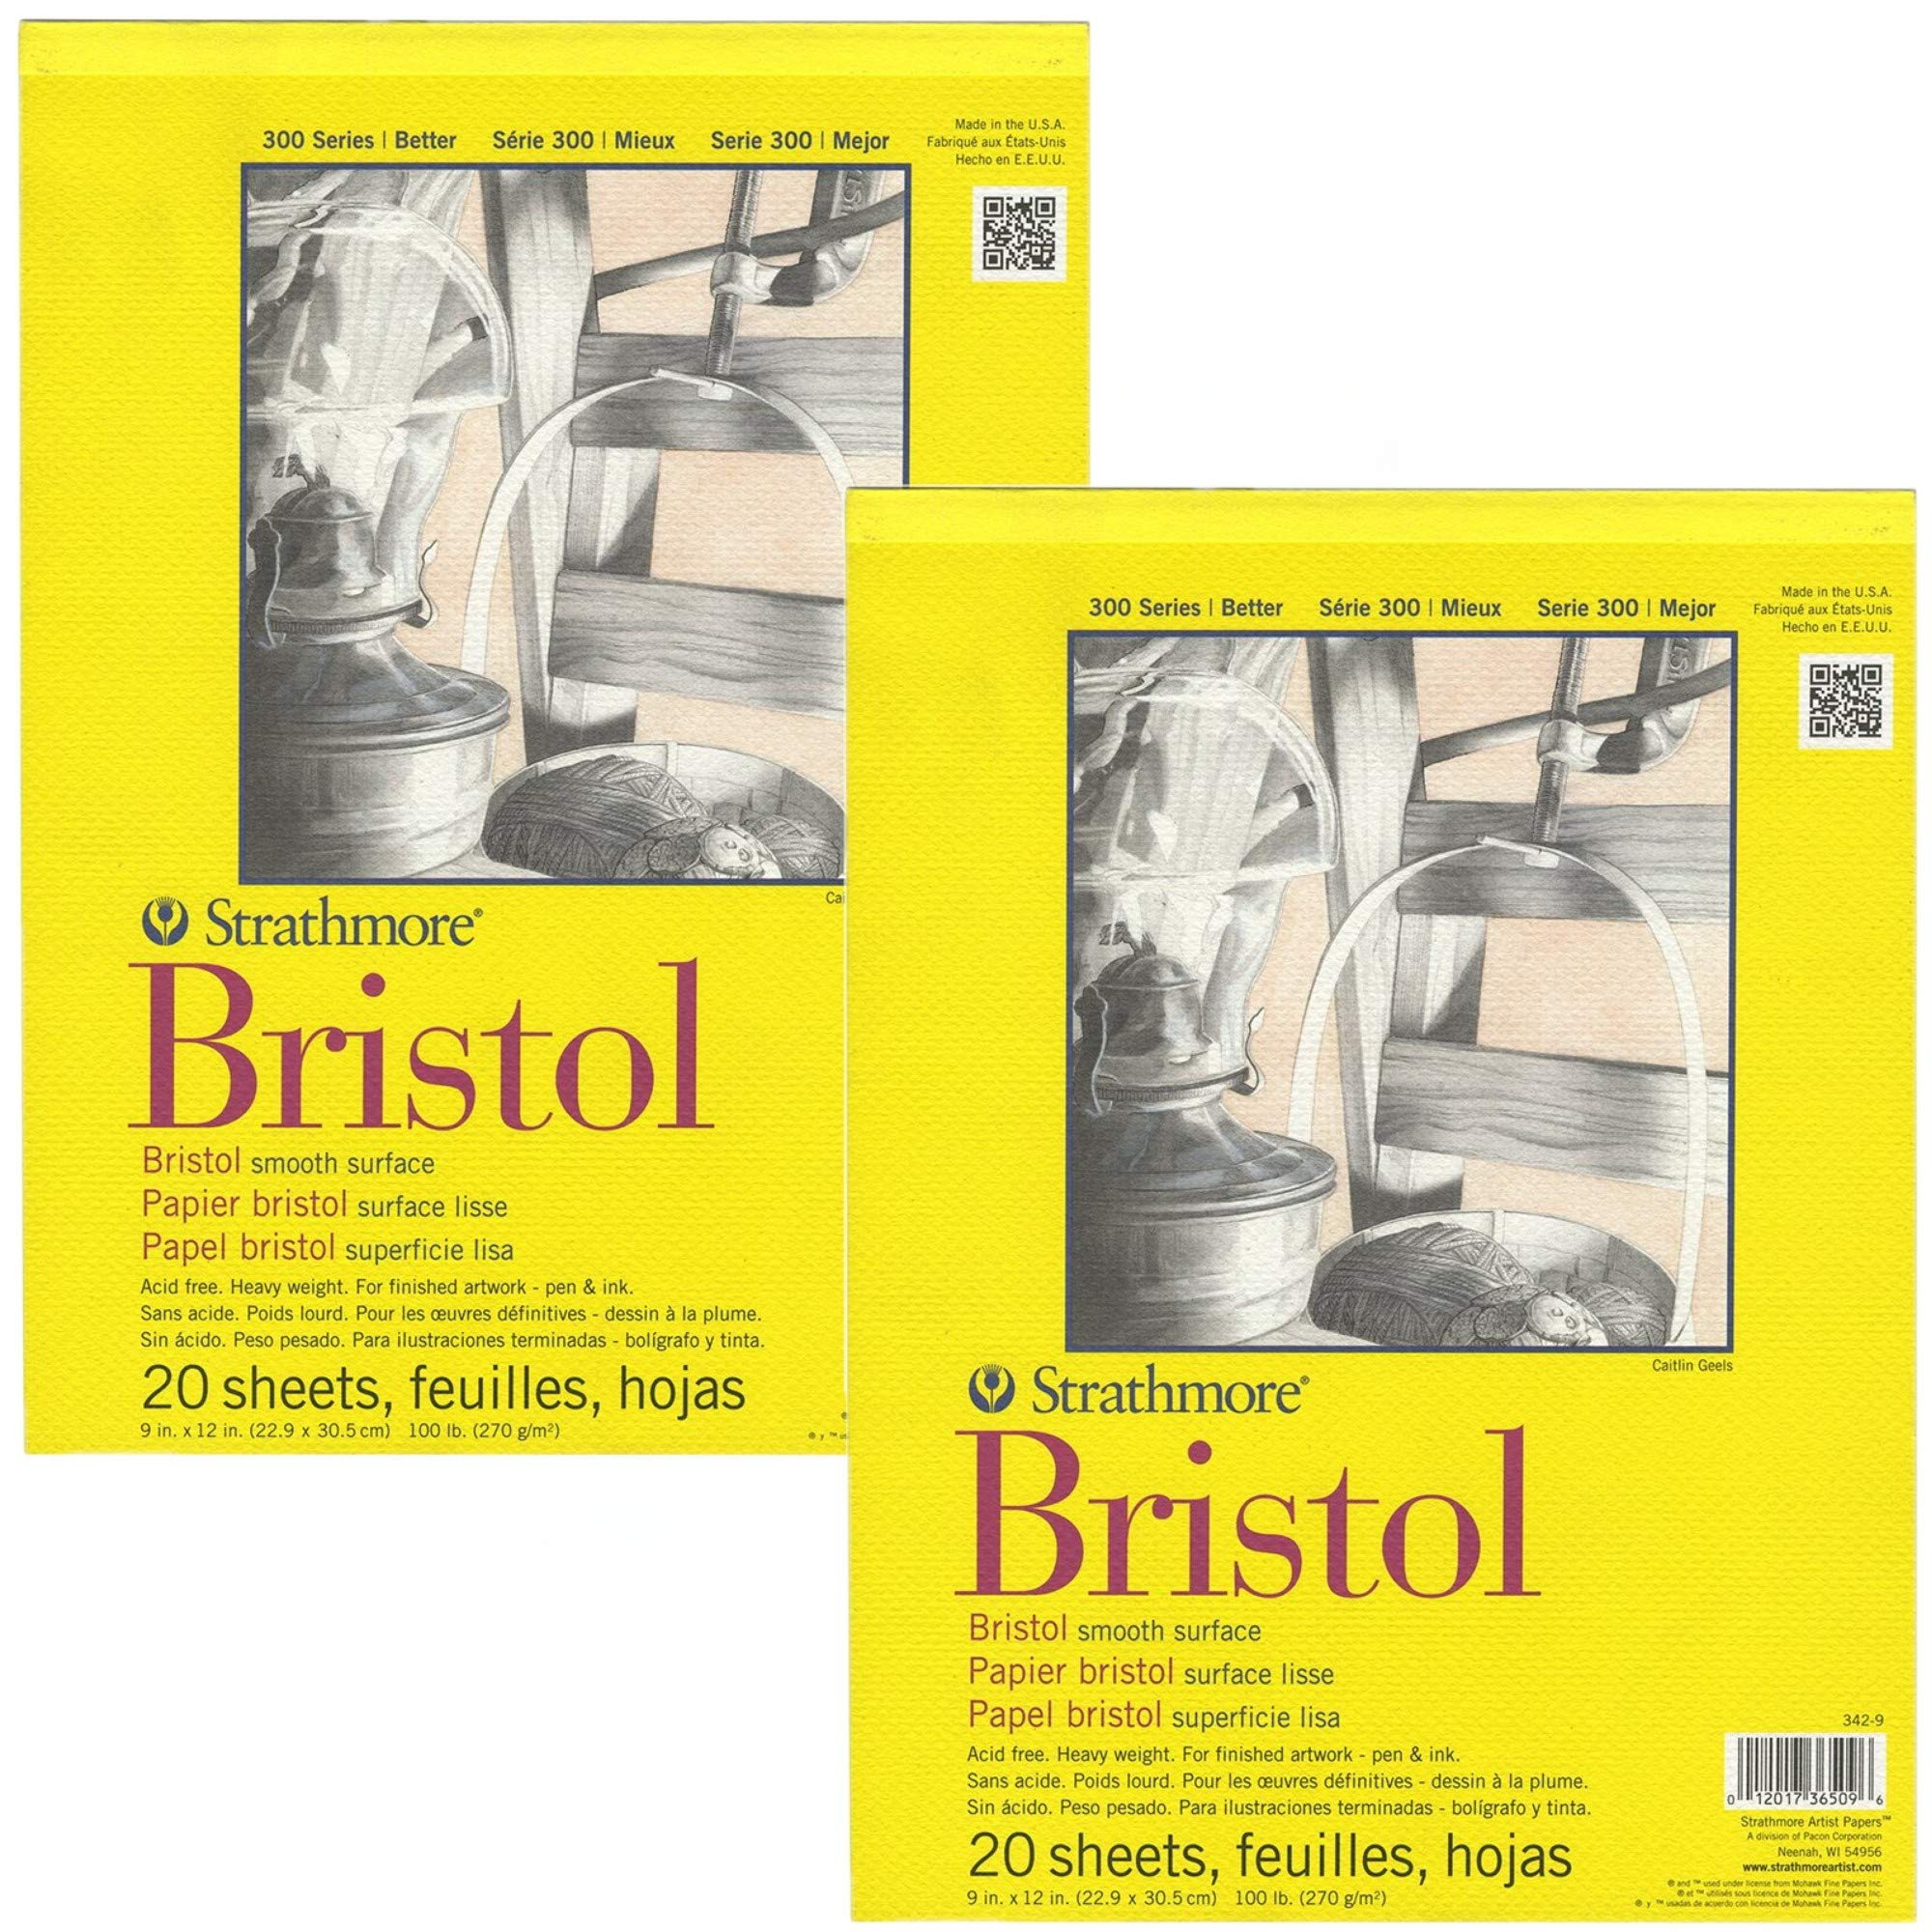 Strathmore 300 Series Bristol Smooth Pad, 9''x12'' Tape Bound, 20 Sheets (Pack of 2) by Strathmore